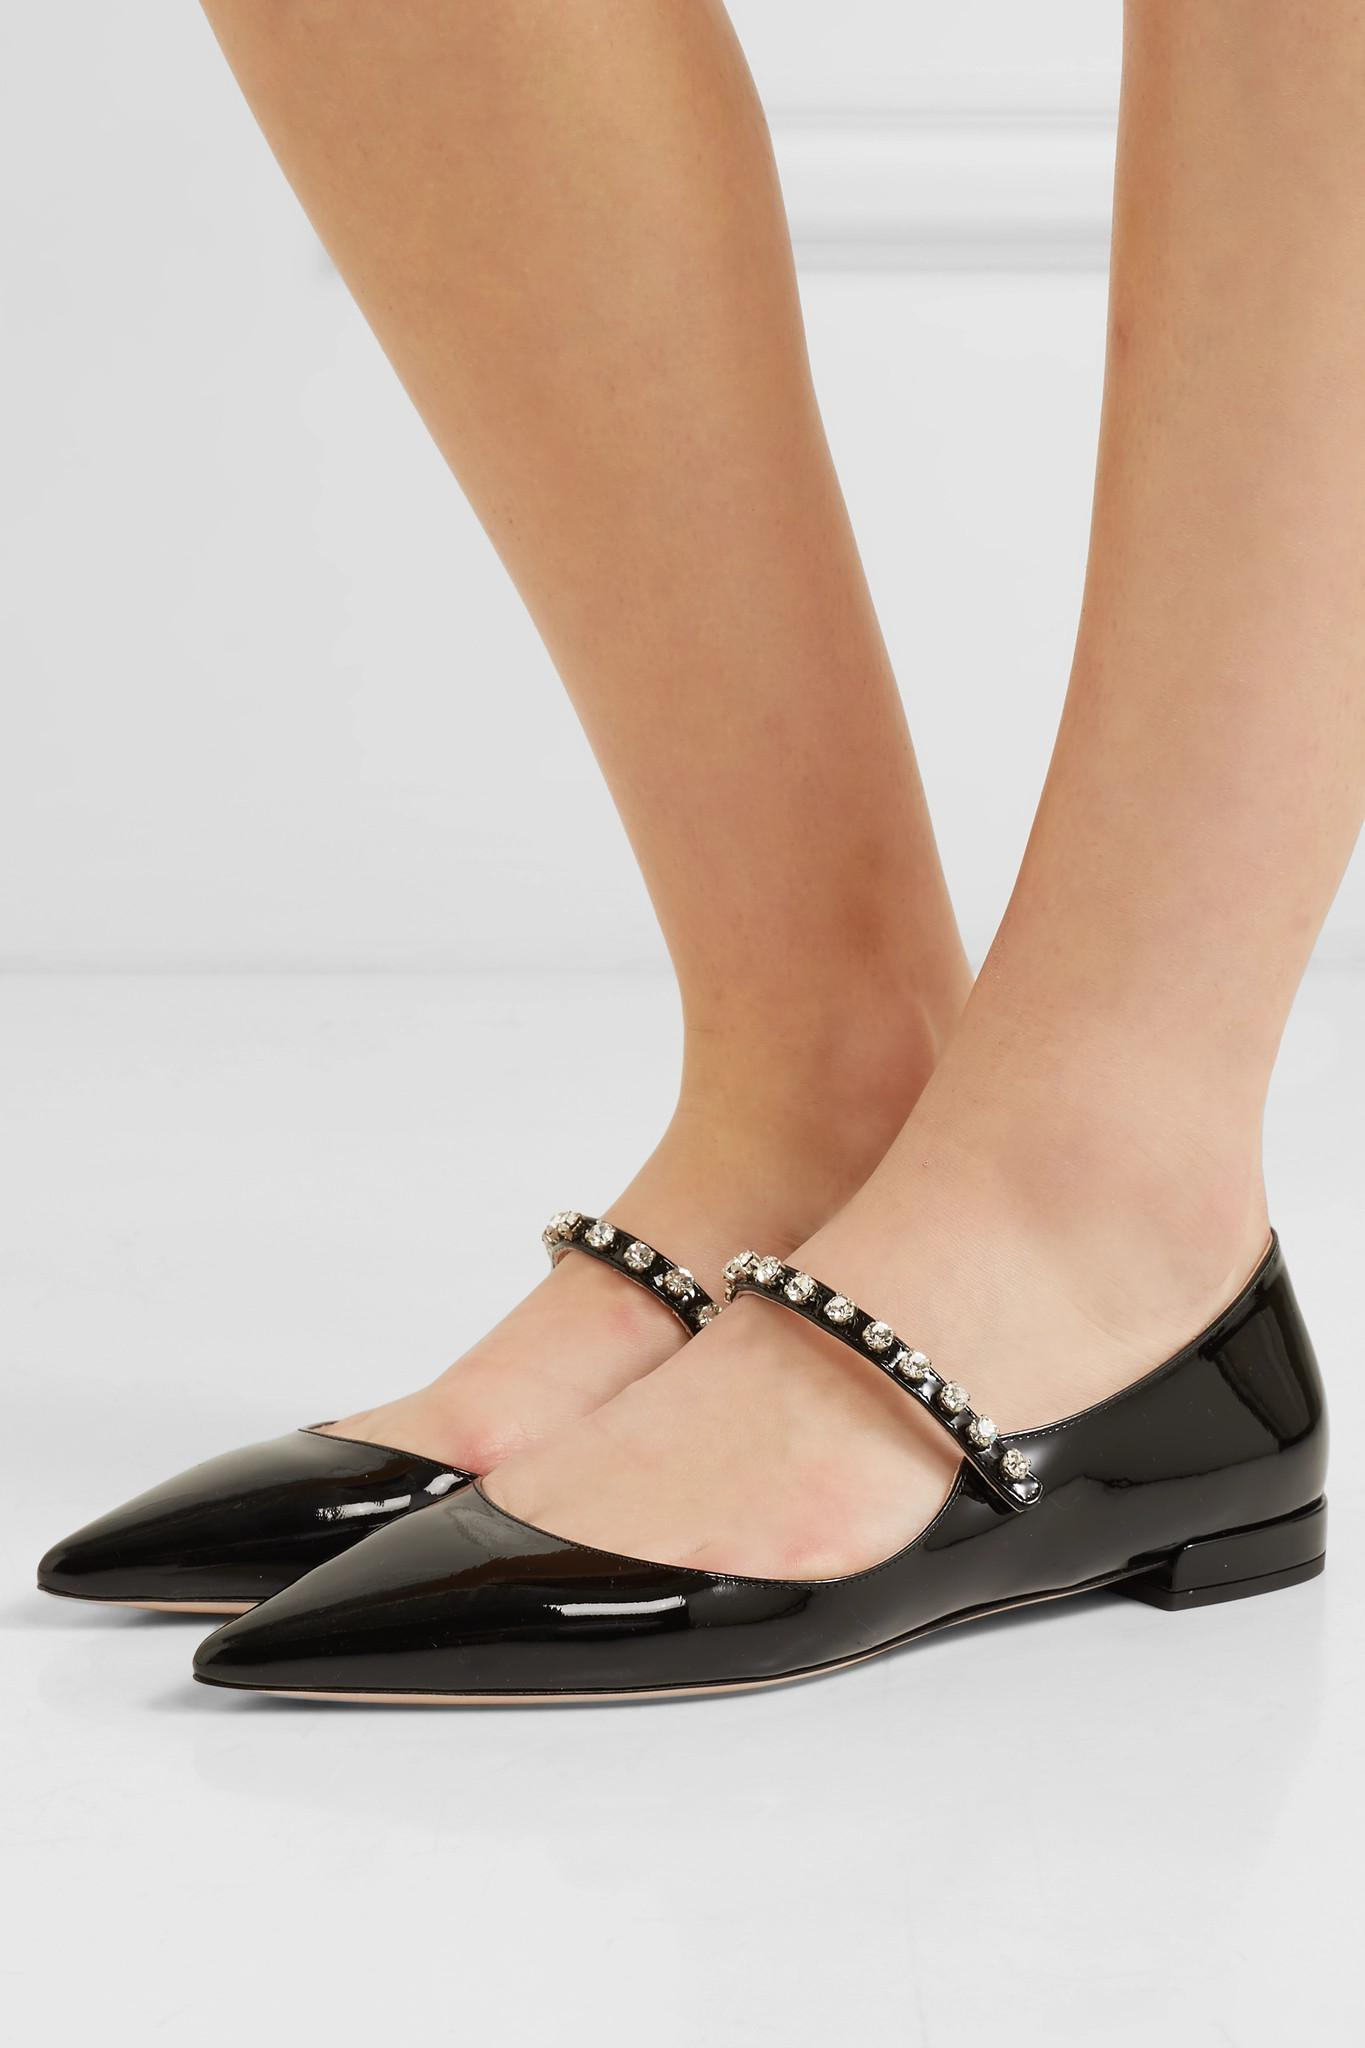 a2ca860db28 Miu Miu - Black Crystal-embellished Patent-leather Point-toe Flats - Lyst.  View fullscreen